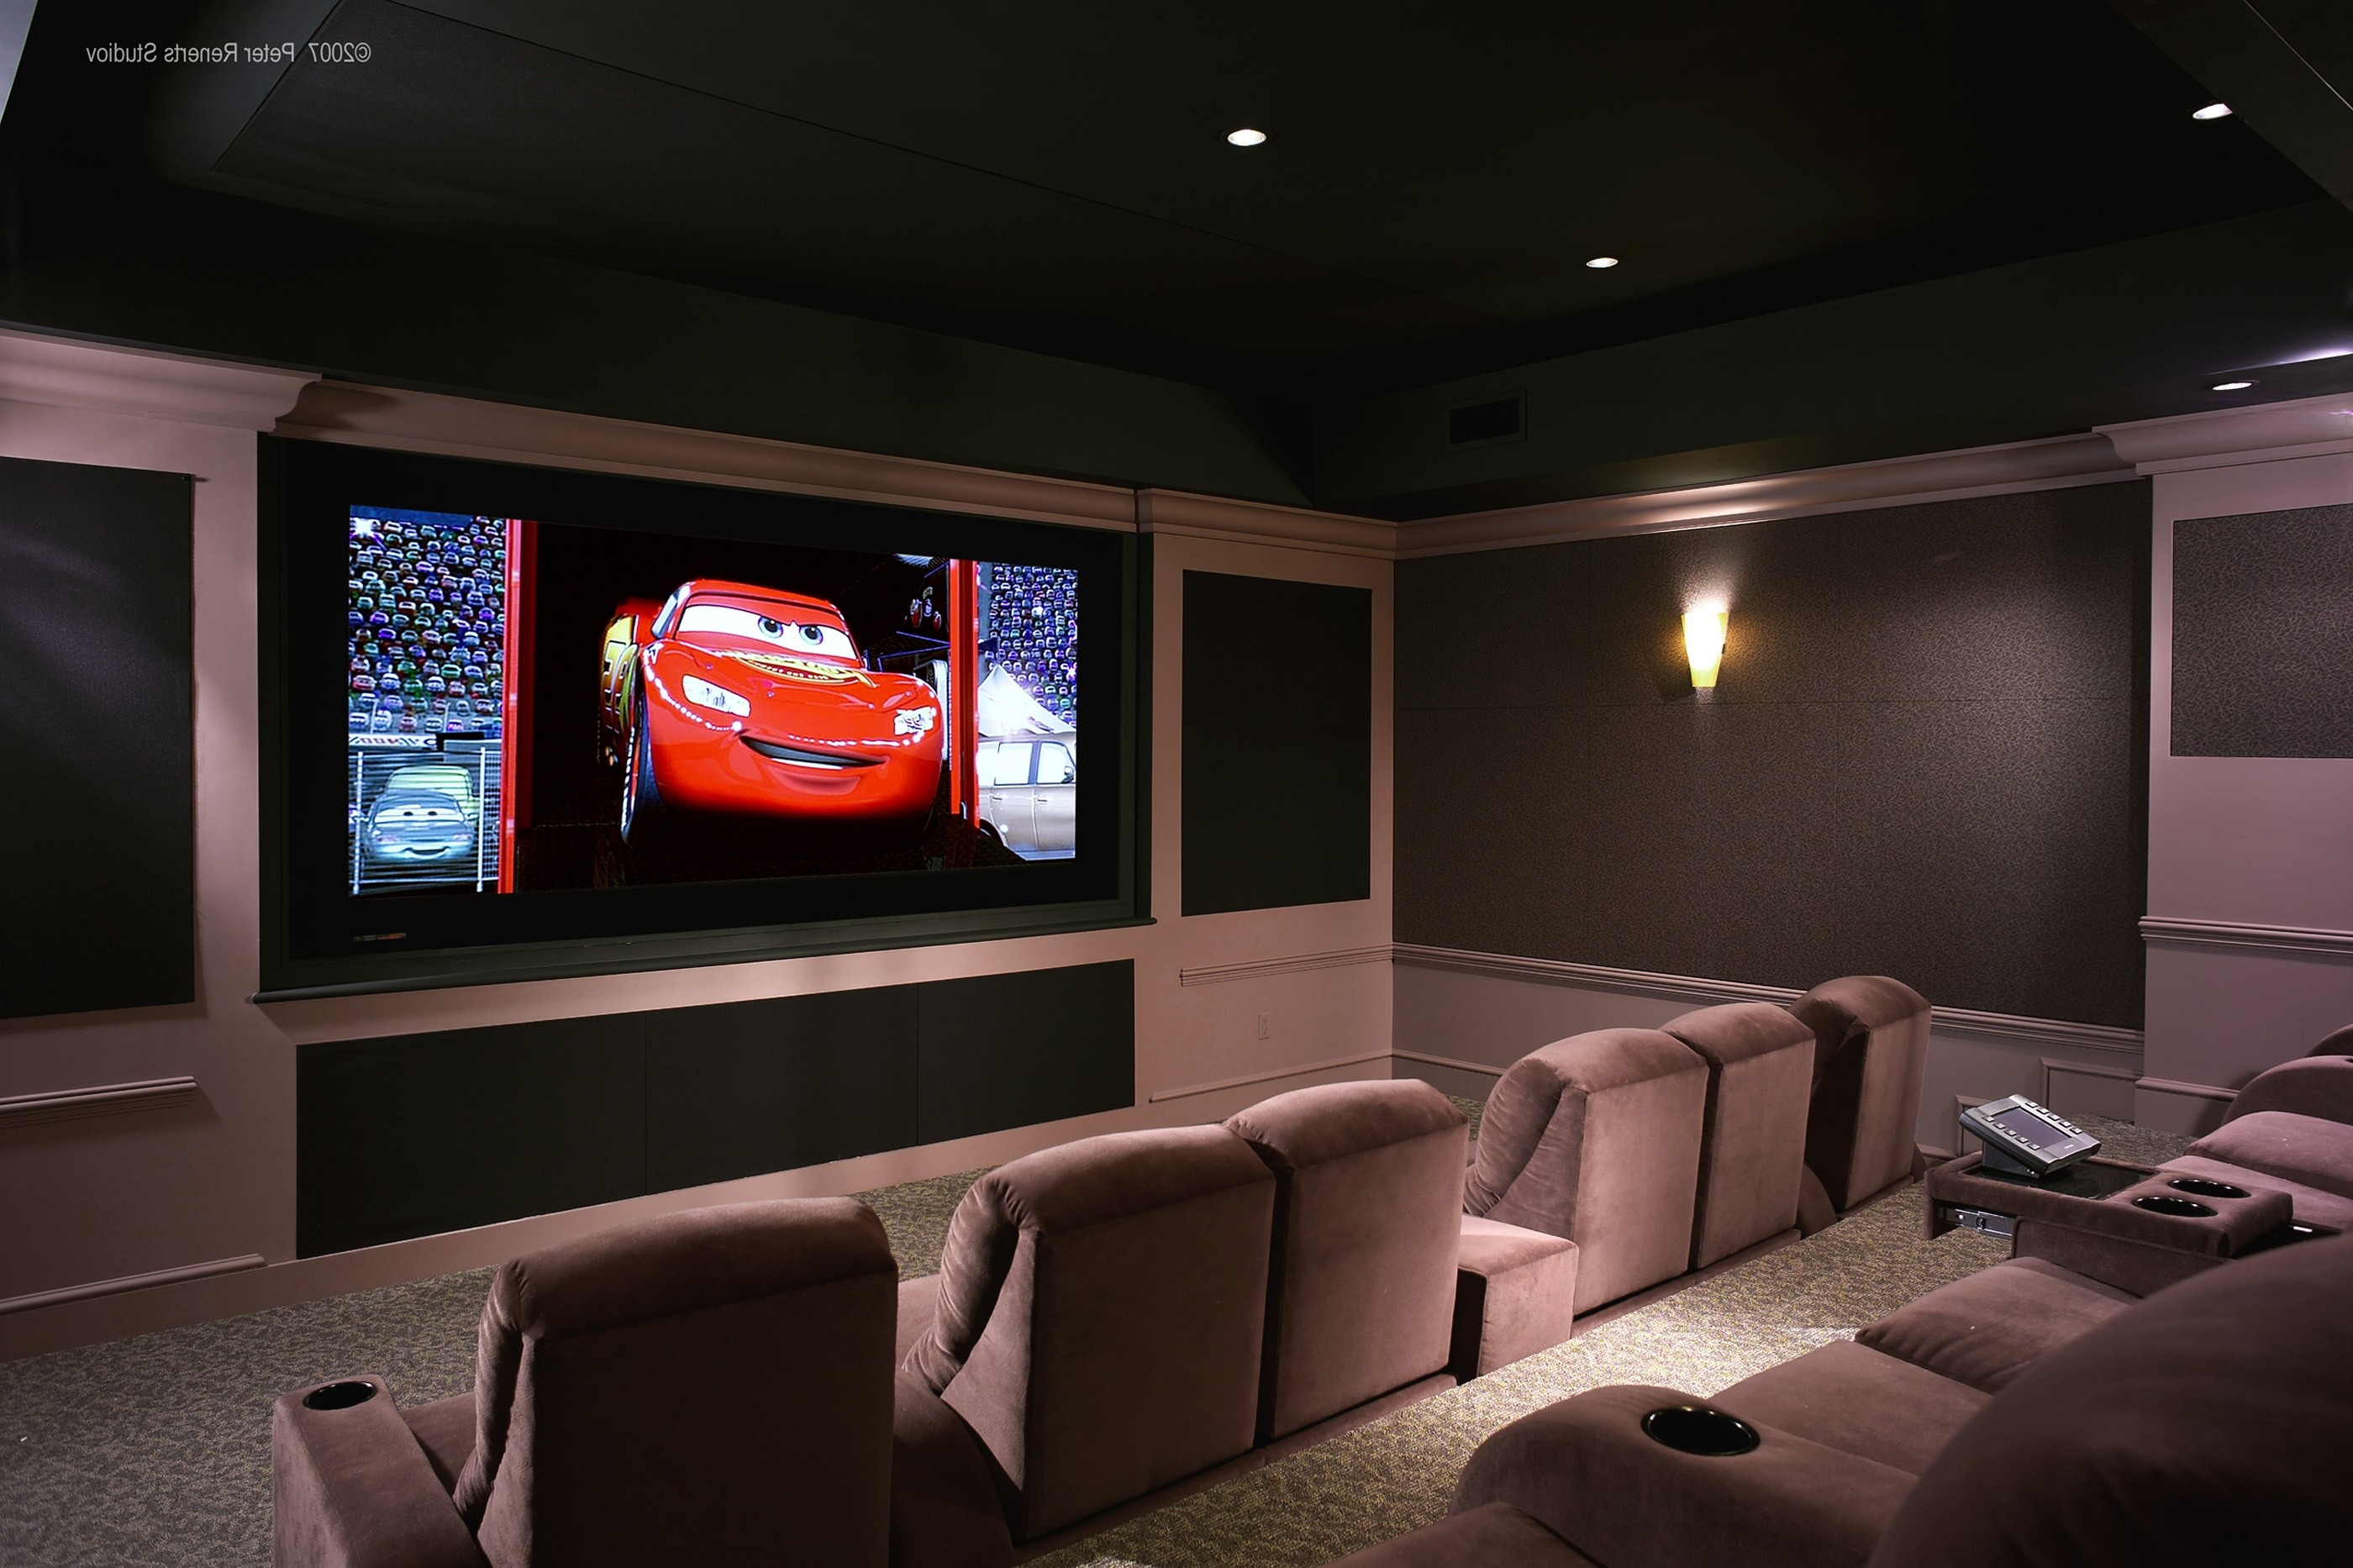 2800x1866 Home Theater Room Design Modern Home Design Small Home Cinema Room, Backgrounds